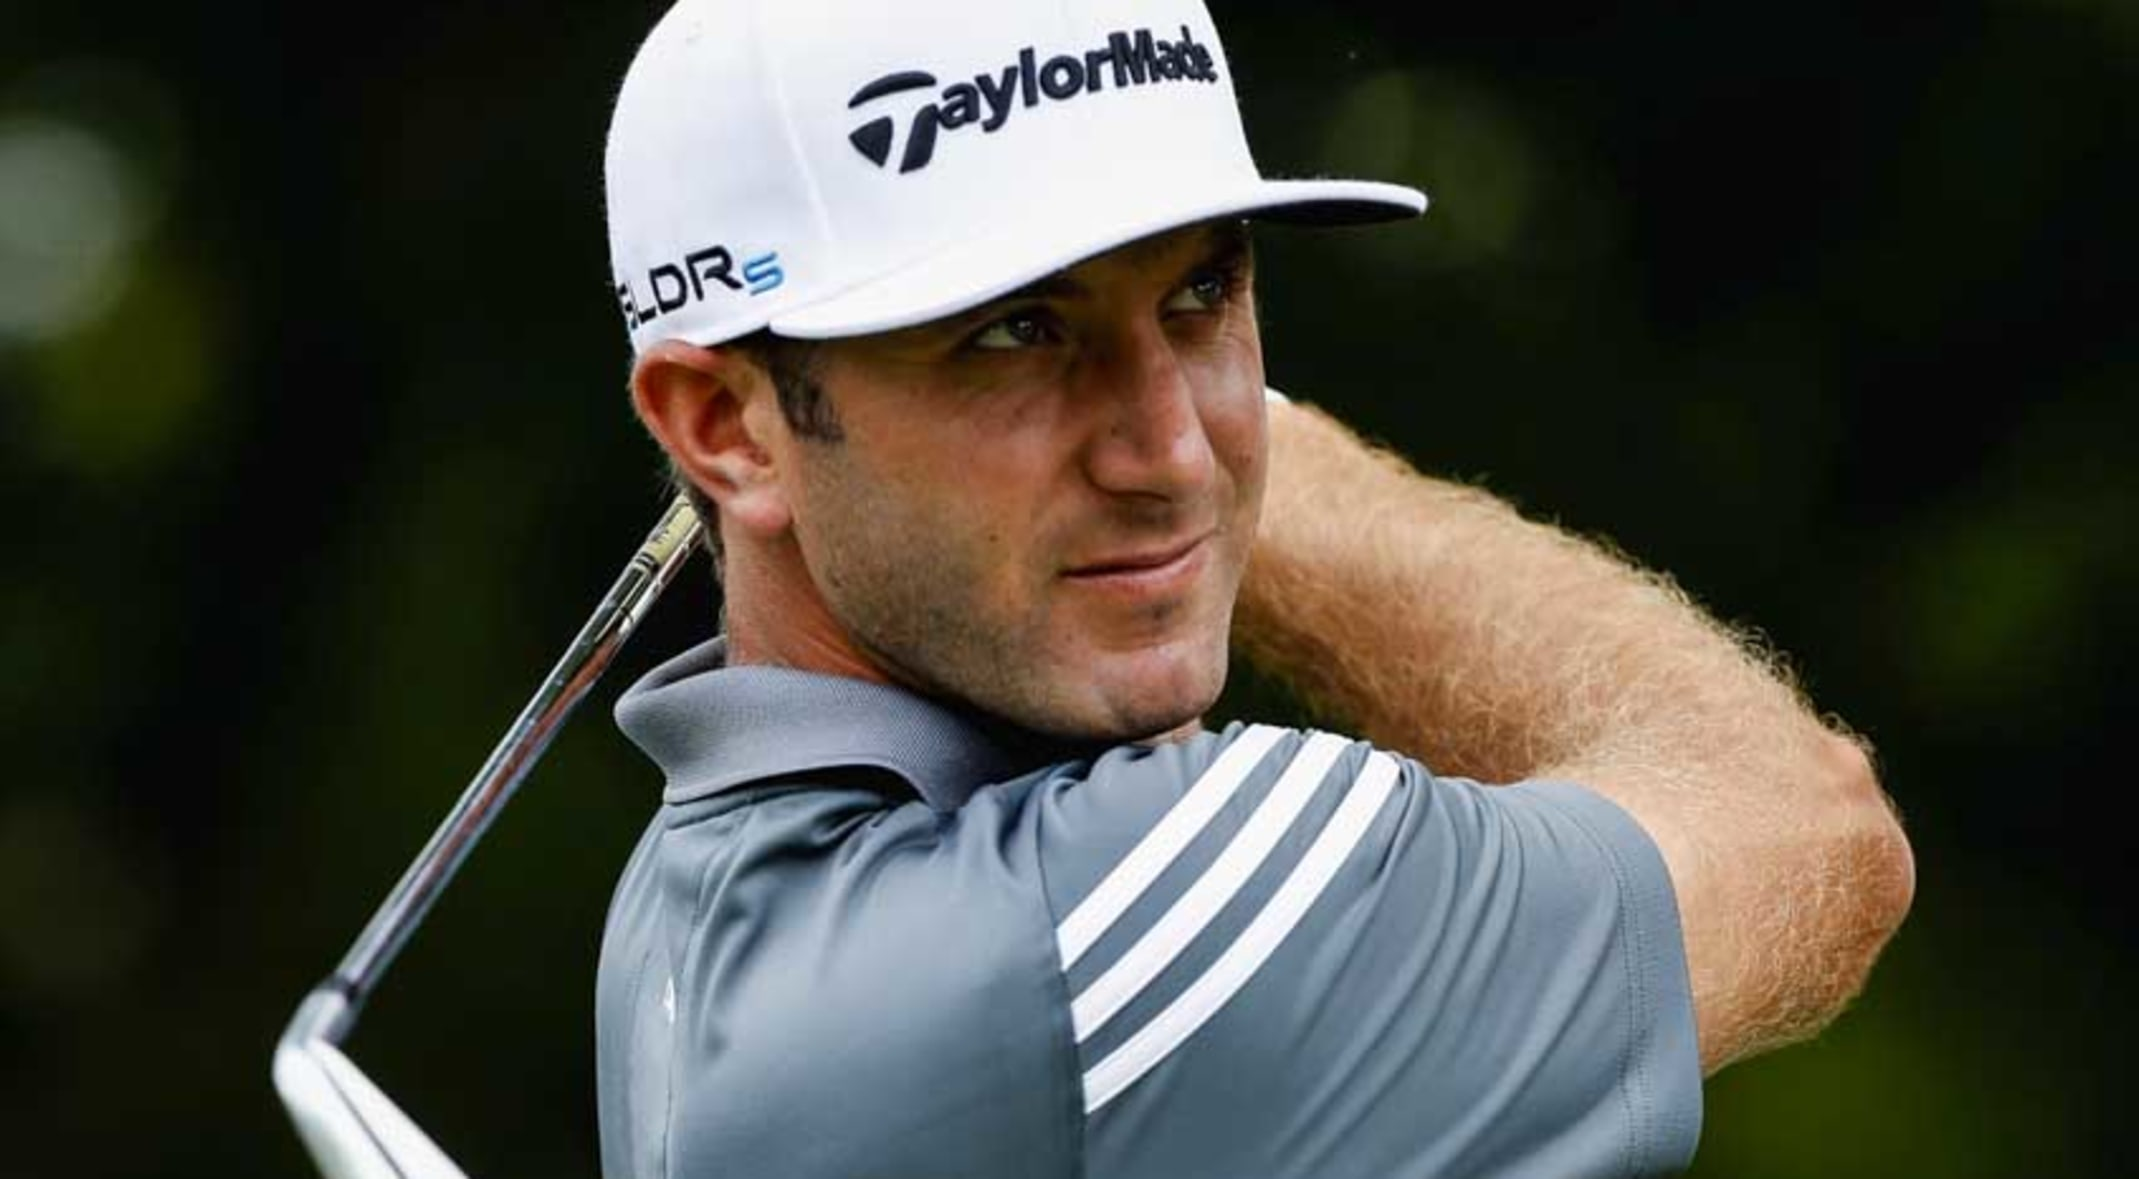 Dustin Johnson carded a bogey-free, 5-under 65 on Thursday at Colonial